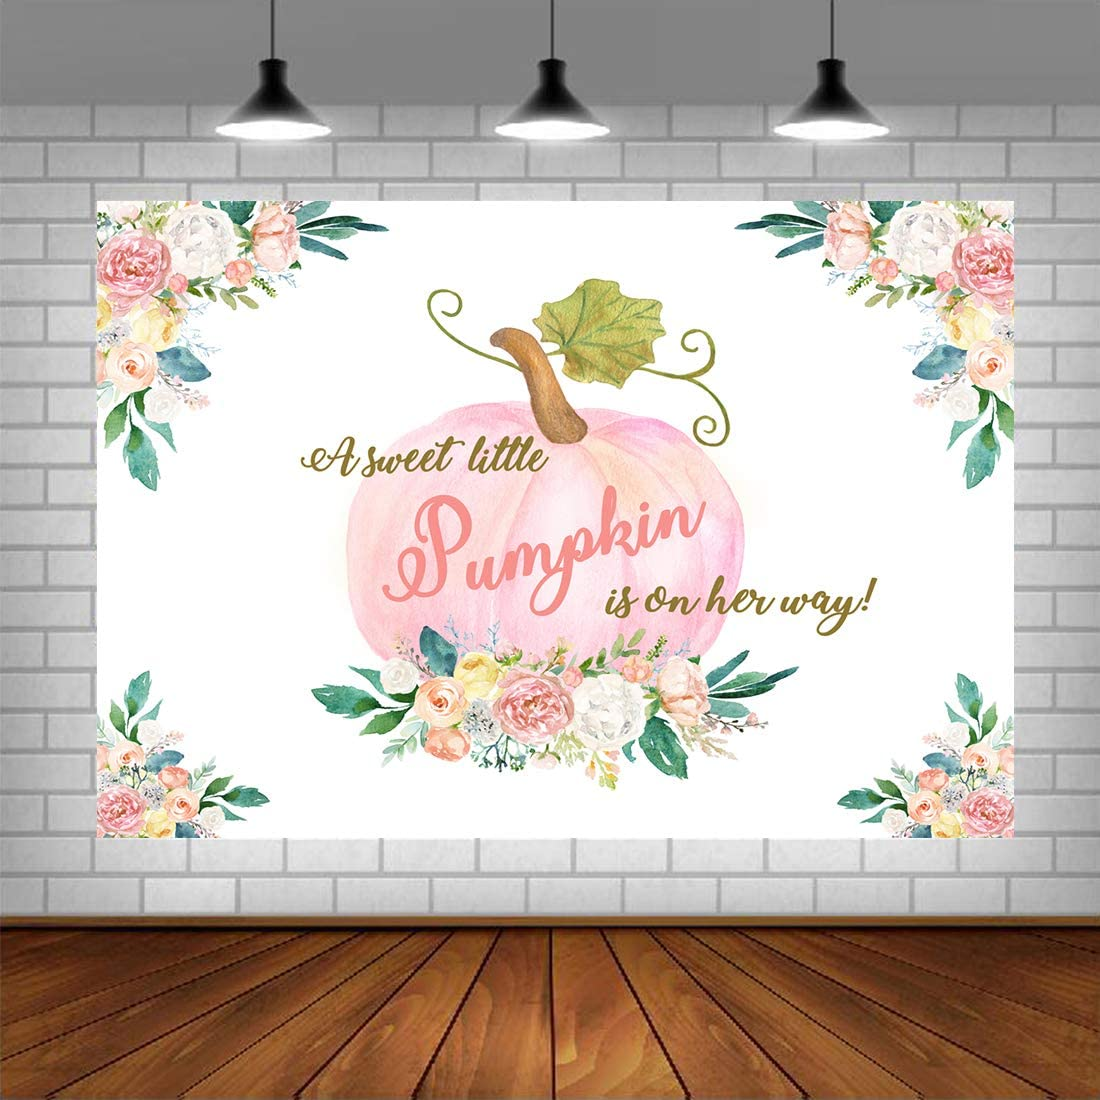 Little Princess Pumpkin Baby Shower Backdrop Halloween Watercolor Pink Floral Baby Background Girl's Fall Autumn Thanksgiving Party Decorations Supplies 5x3ft